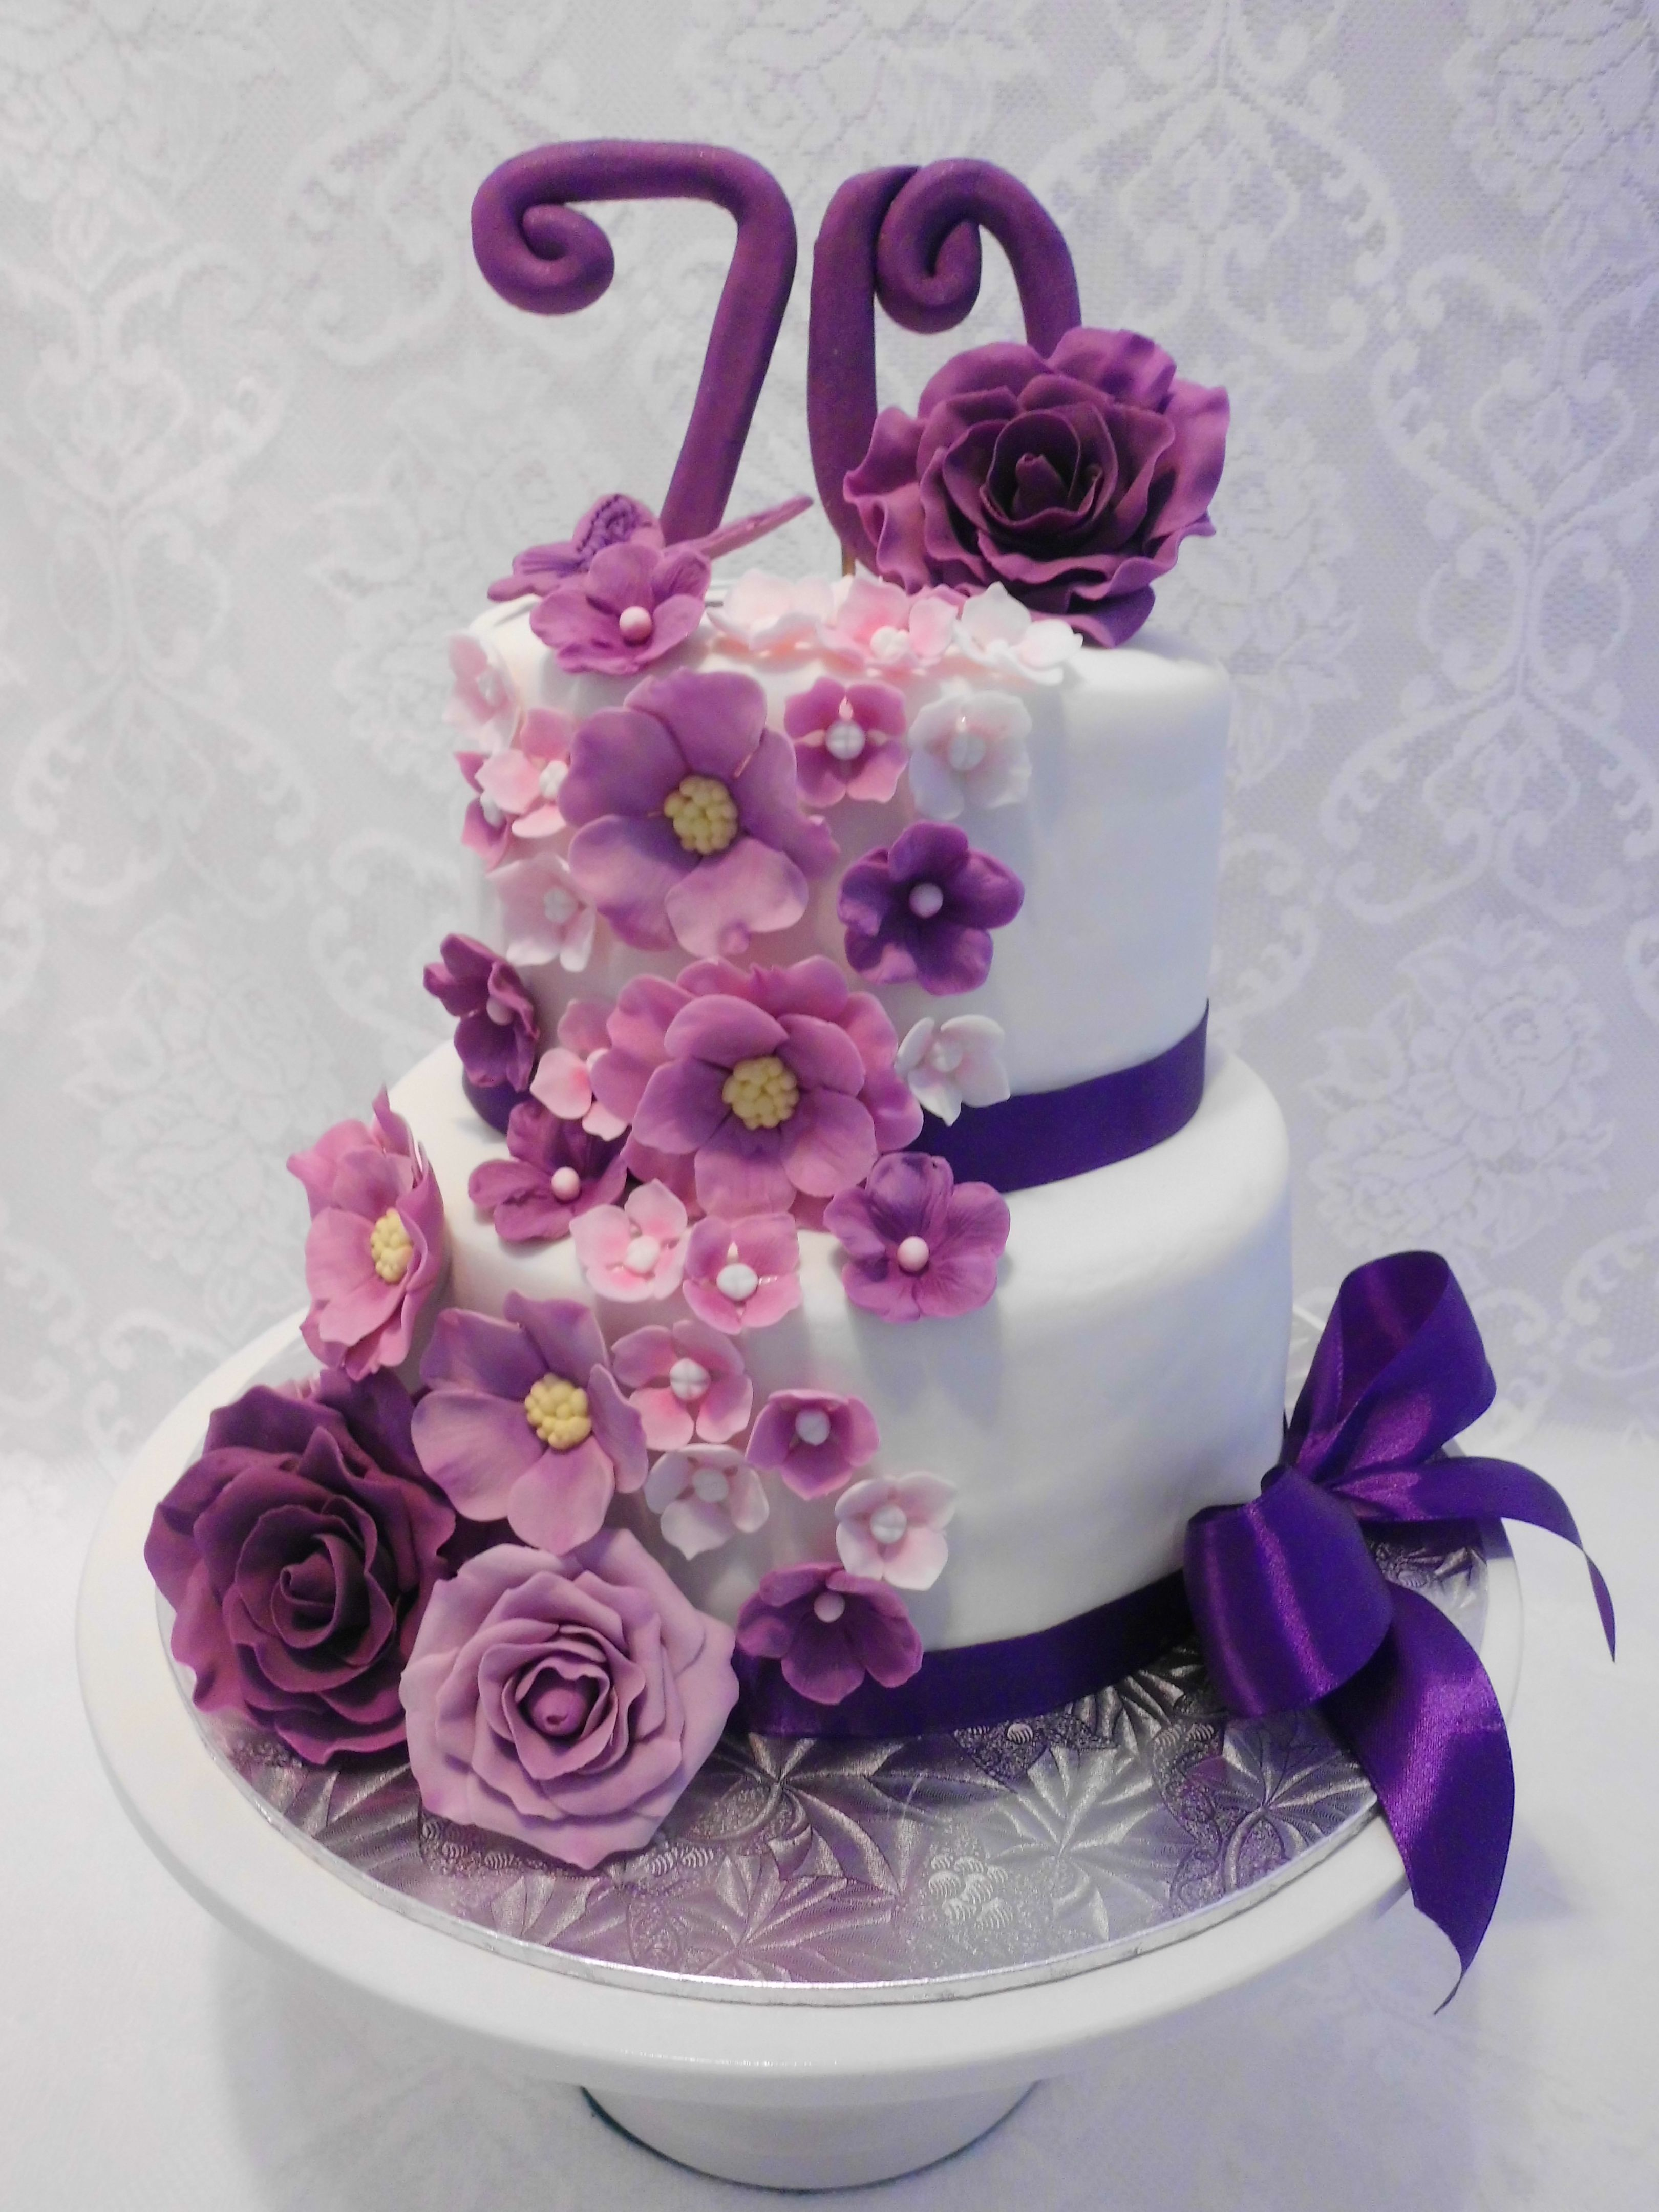 Floral cascade in purple pink mauve 70th birthday cake for a floral cascade in purple pink mauve 70th birthday cake for a lady who loves the colour purple fondant cake with gumpaste flowers and satin ribbon izmirmasajfo